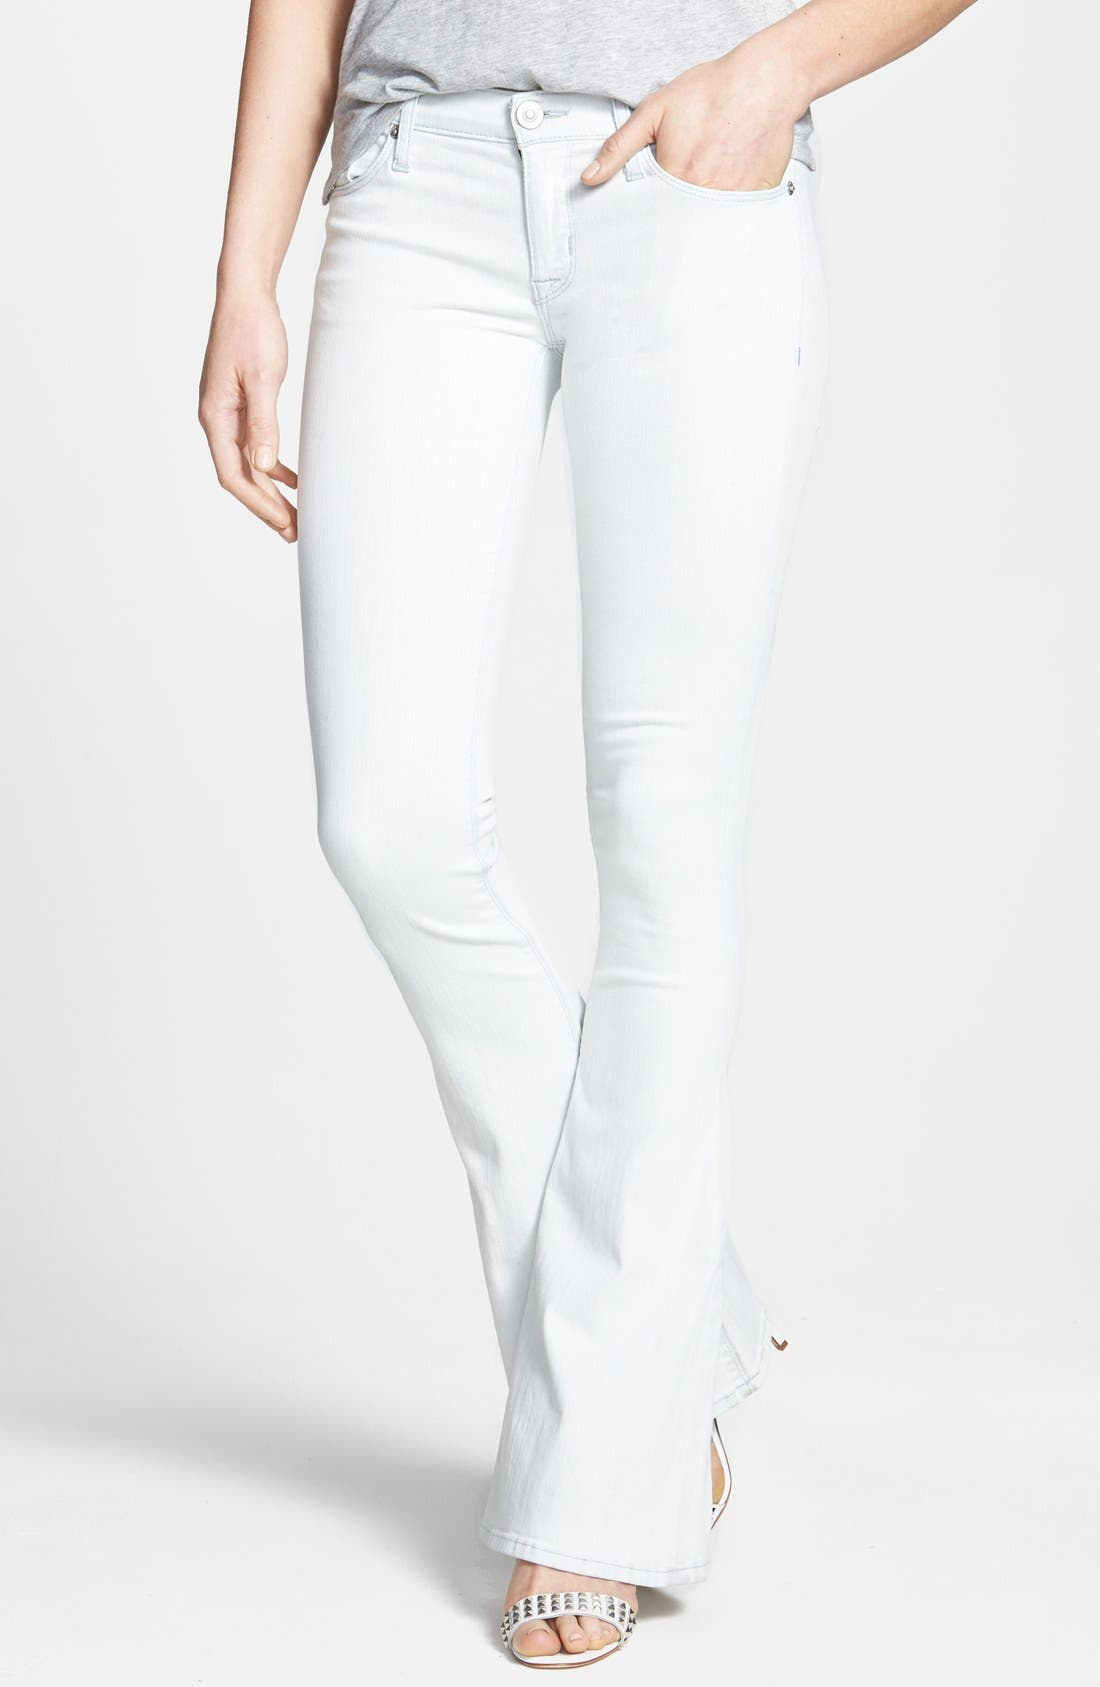 Alternate Image 1 Selected - Hudson Jeans 'Angel' Flared Jeans (Endless Summer)